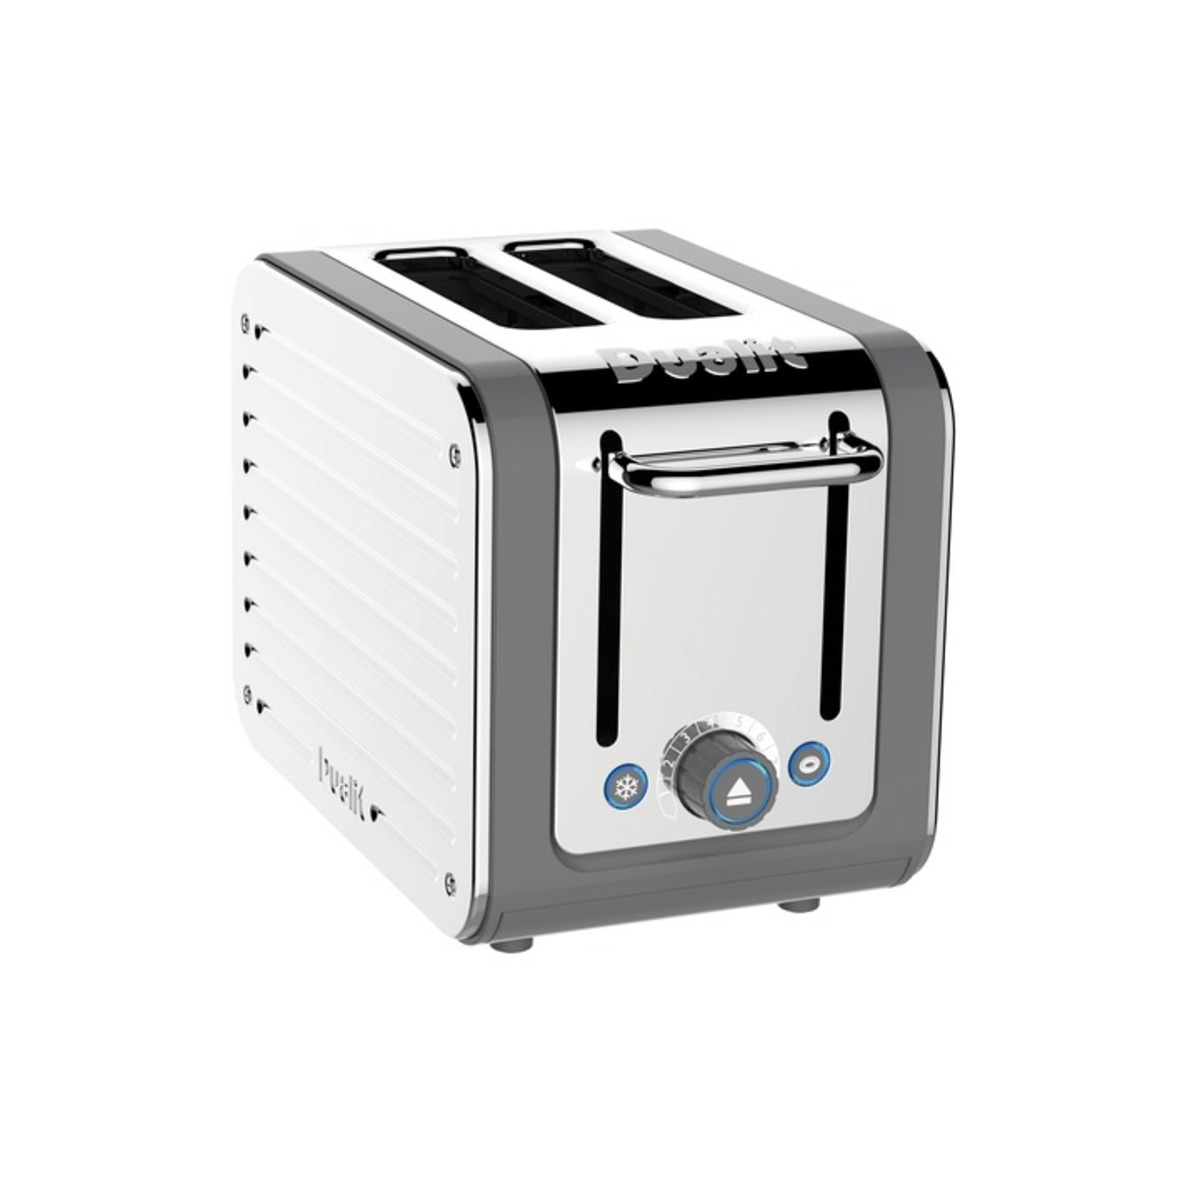 Image of Dualit 26526 ARCHITECT 2 Slot Toaster, Grey/Stainless Steel